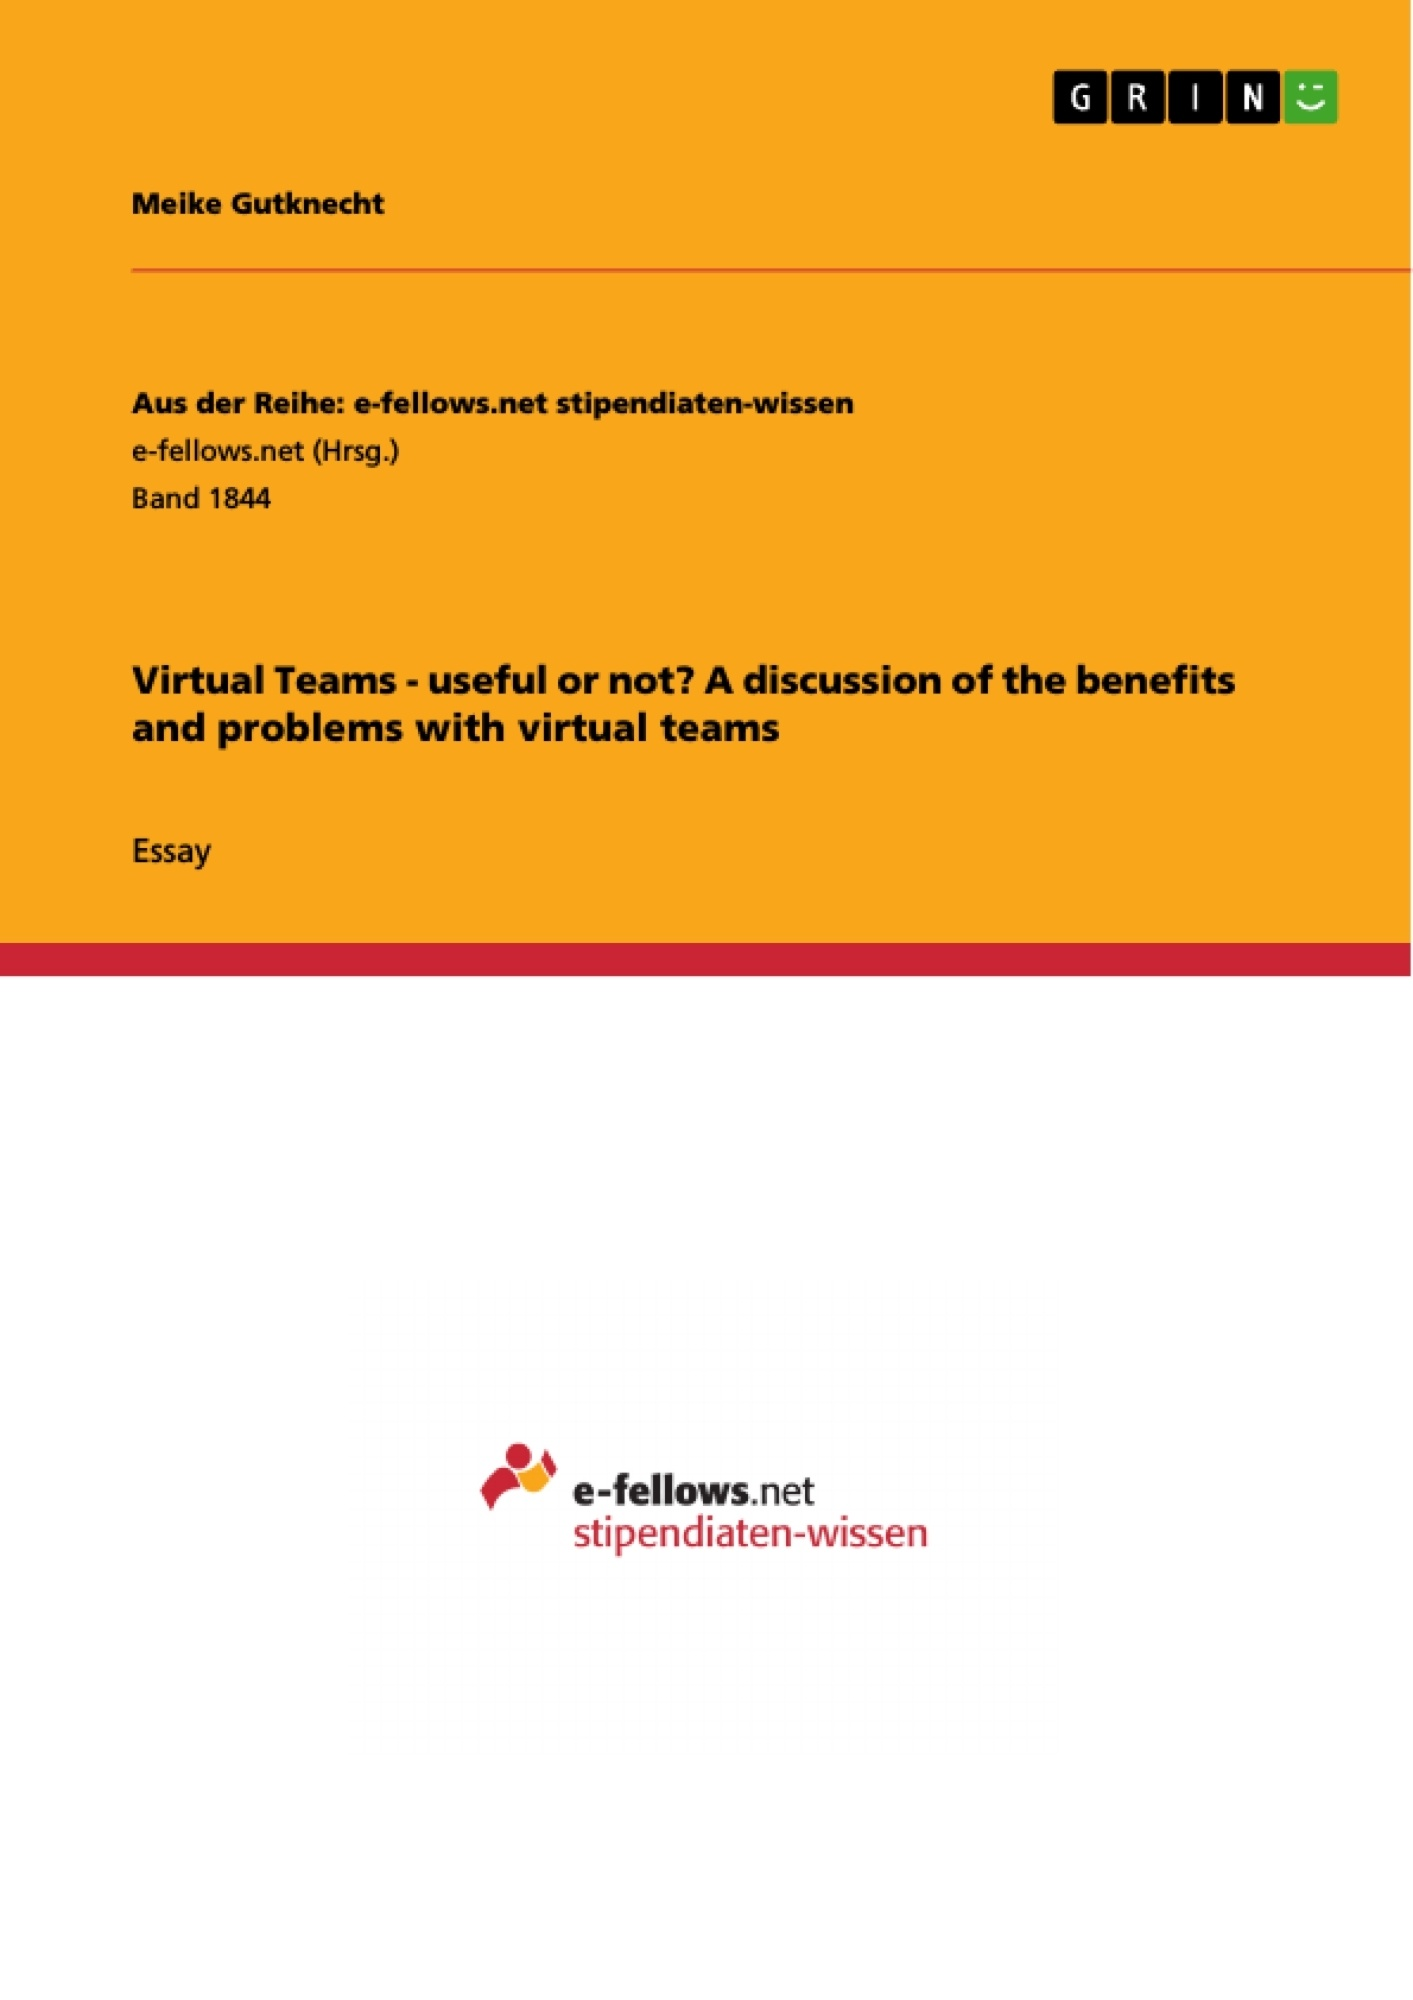 Title: Virtual Teams - useful or not? A discussion of the benefits and problems with virtual teams